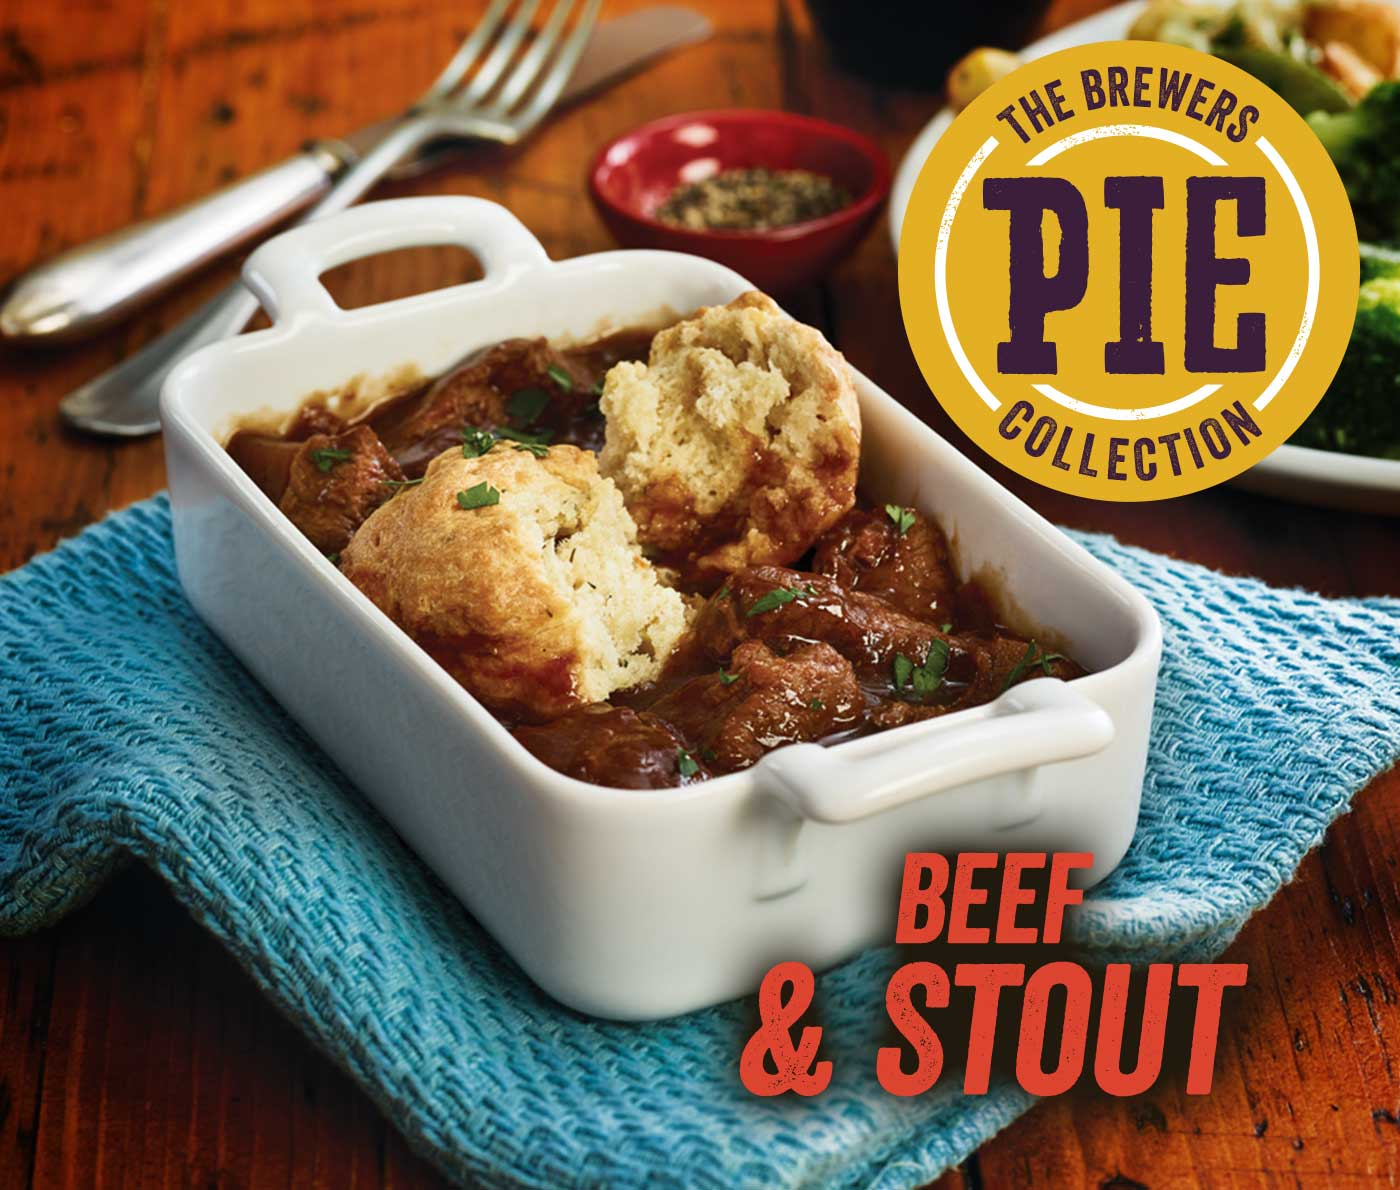 BEEF & STOUT